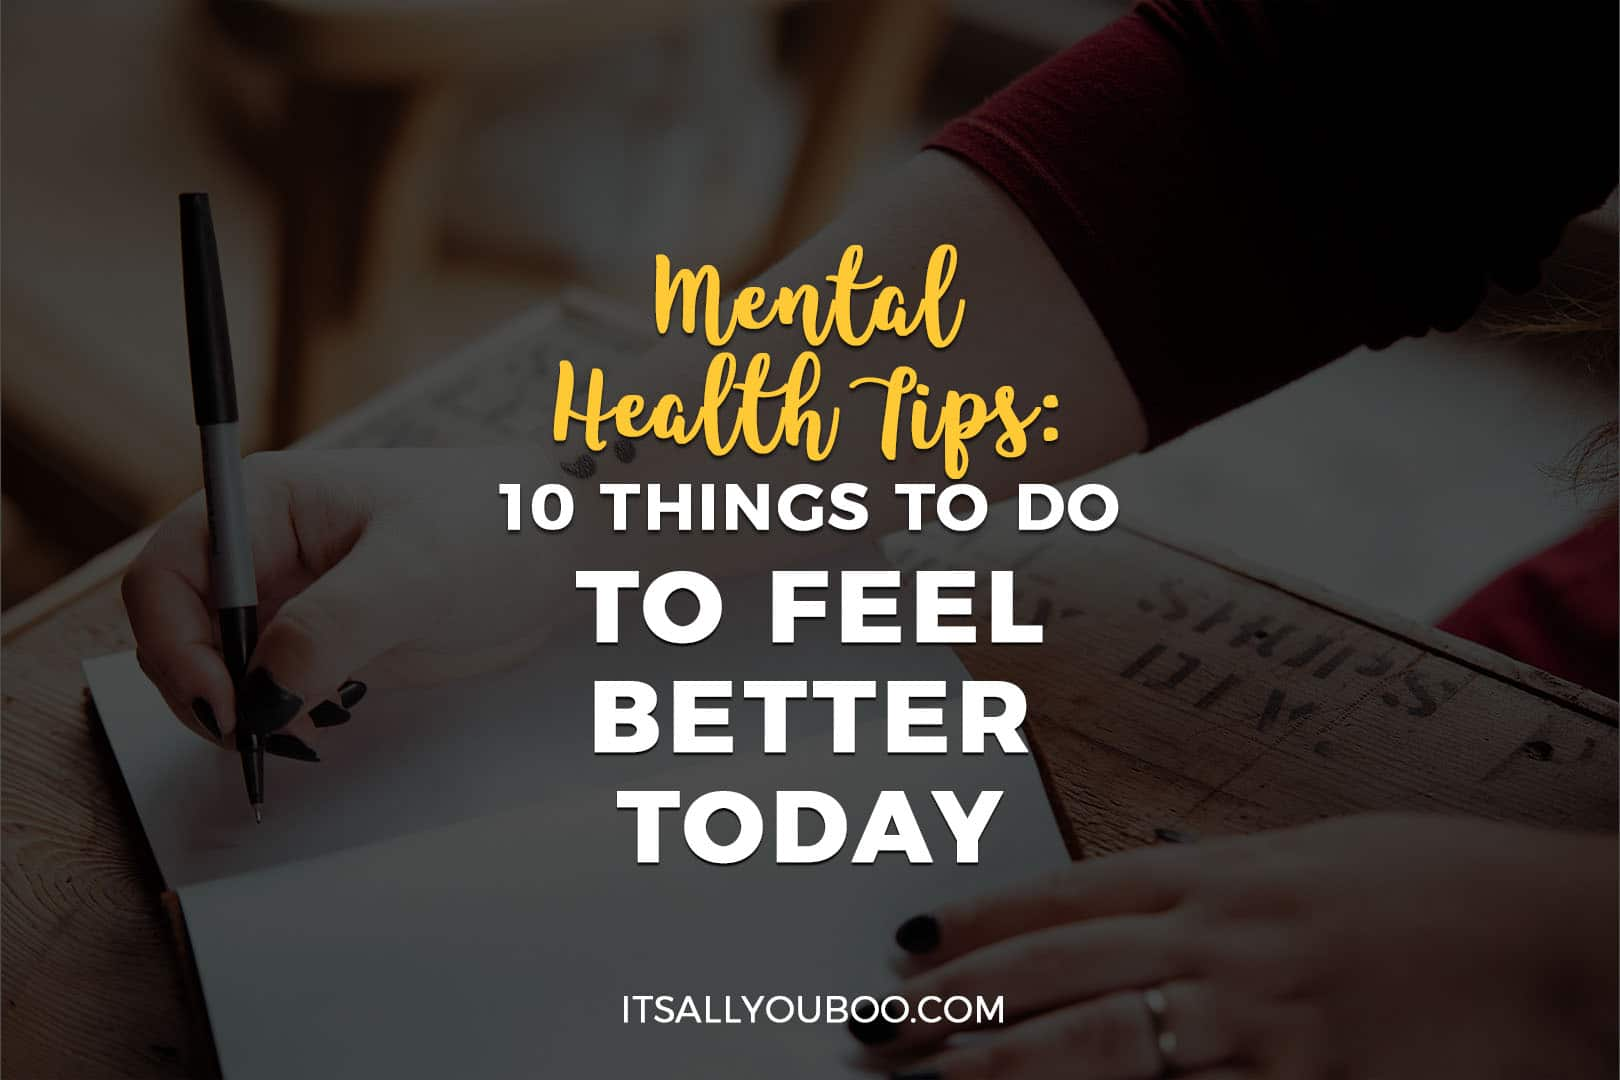 a woman writing in a journal with Mental Health Tips 10 Things to Do to Feel Better Today written